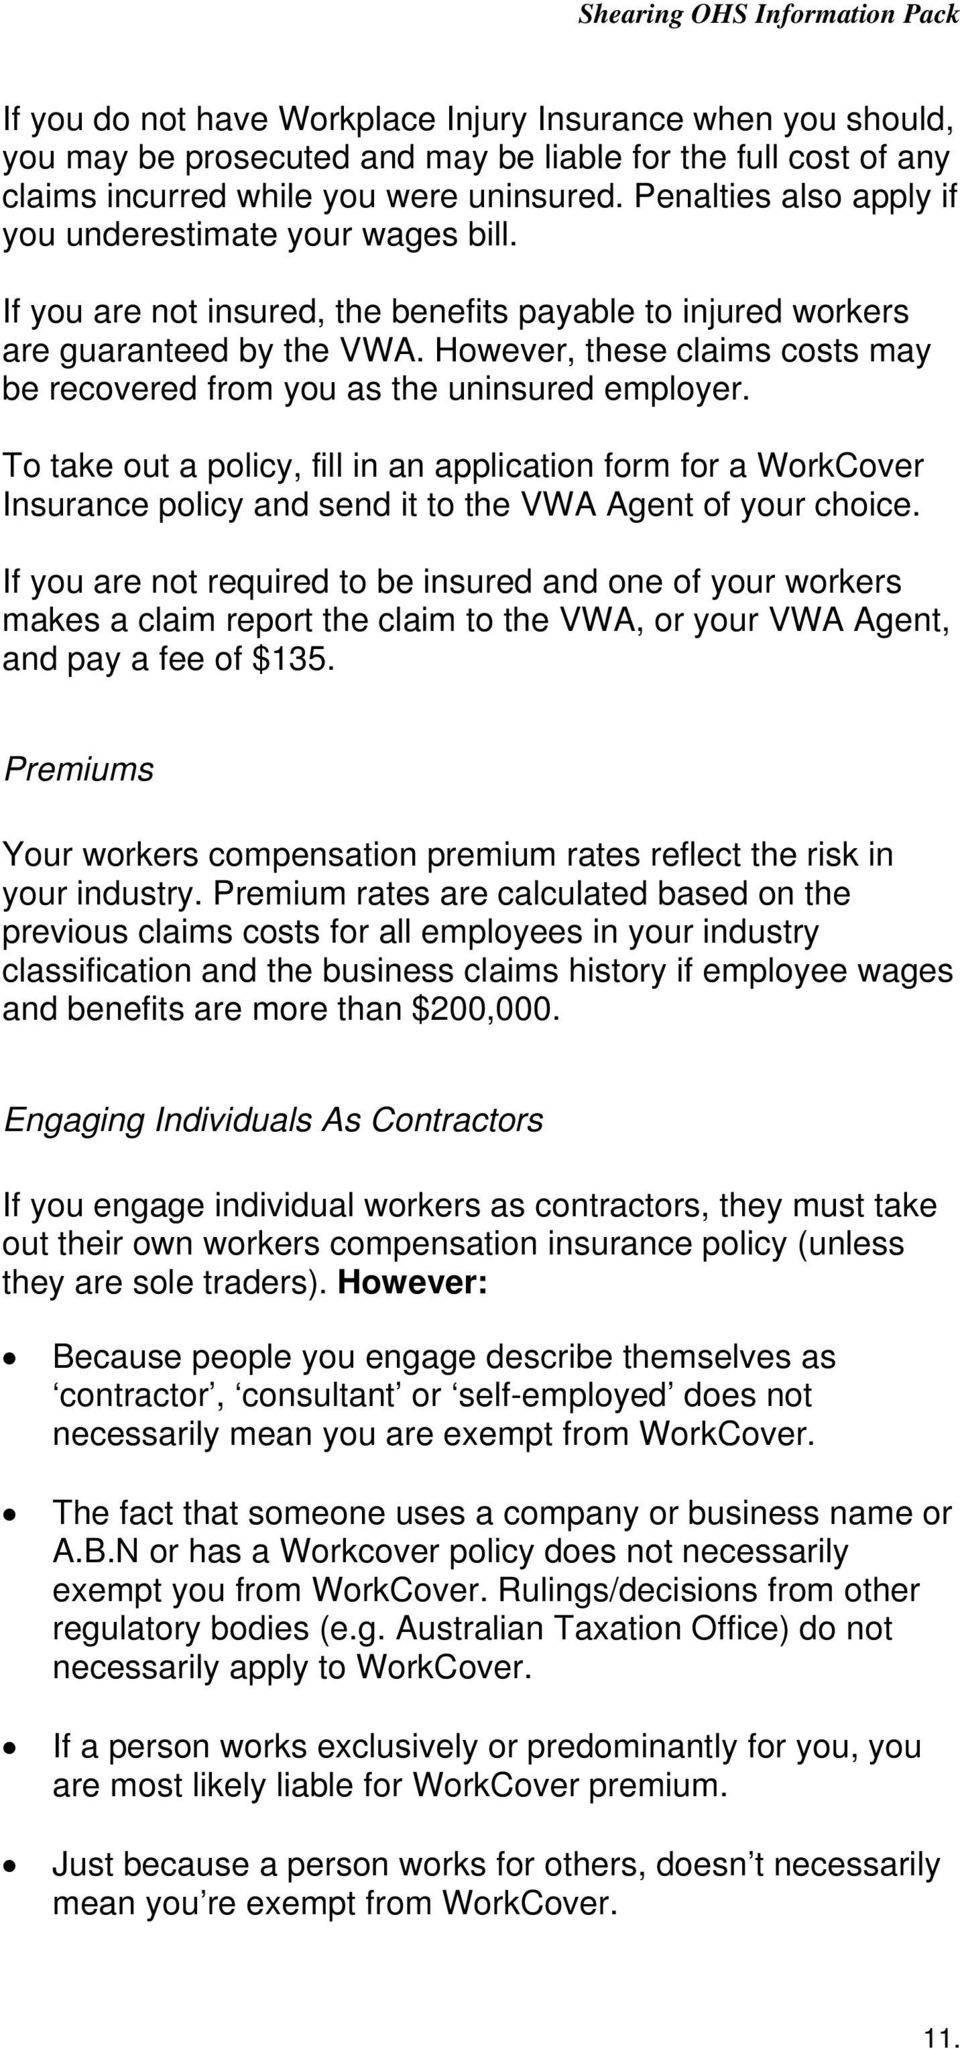 However, these claims costs may be recovered from you as the uninsured employer.